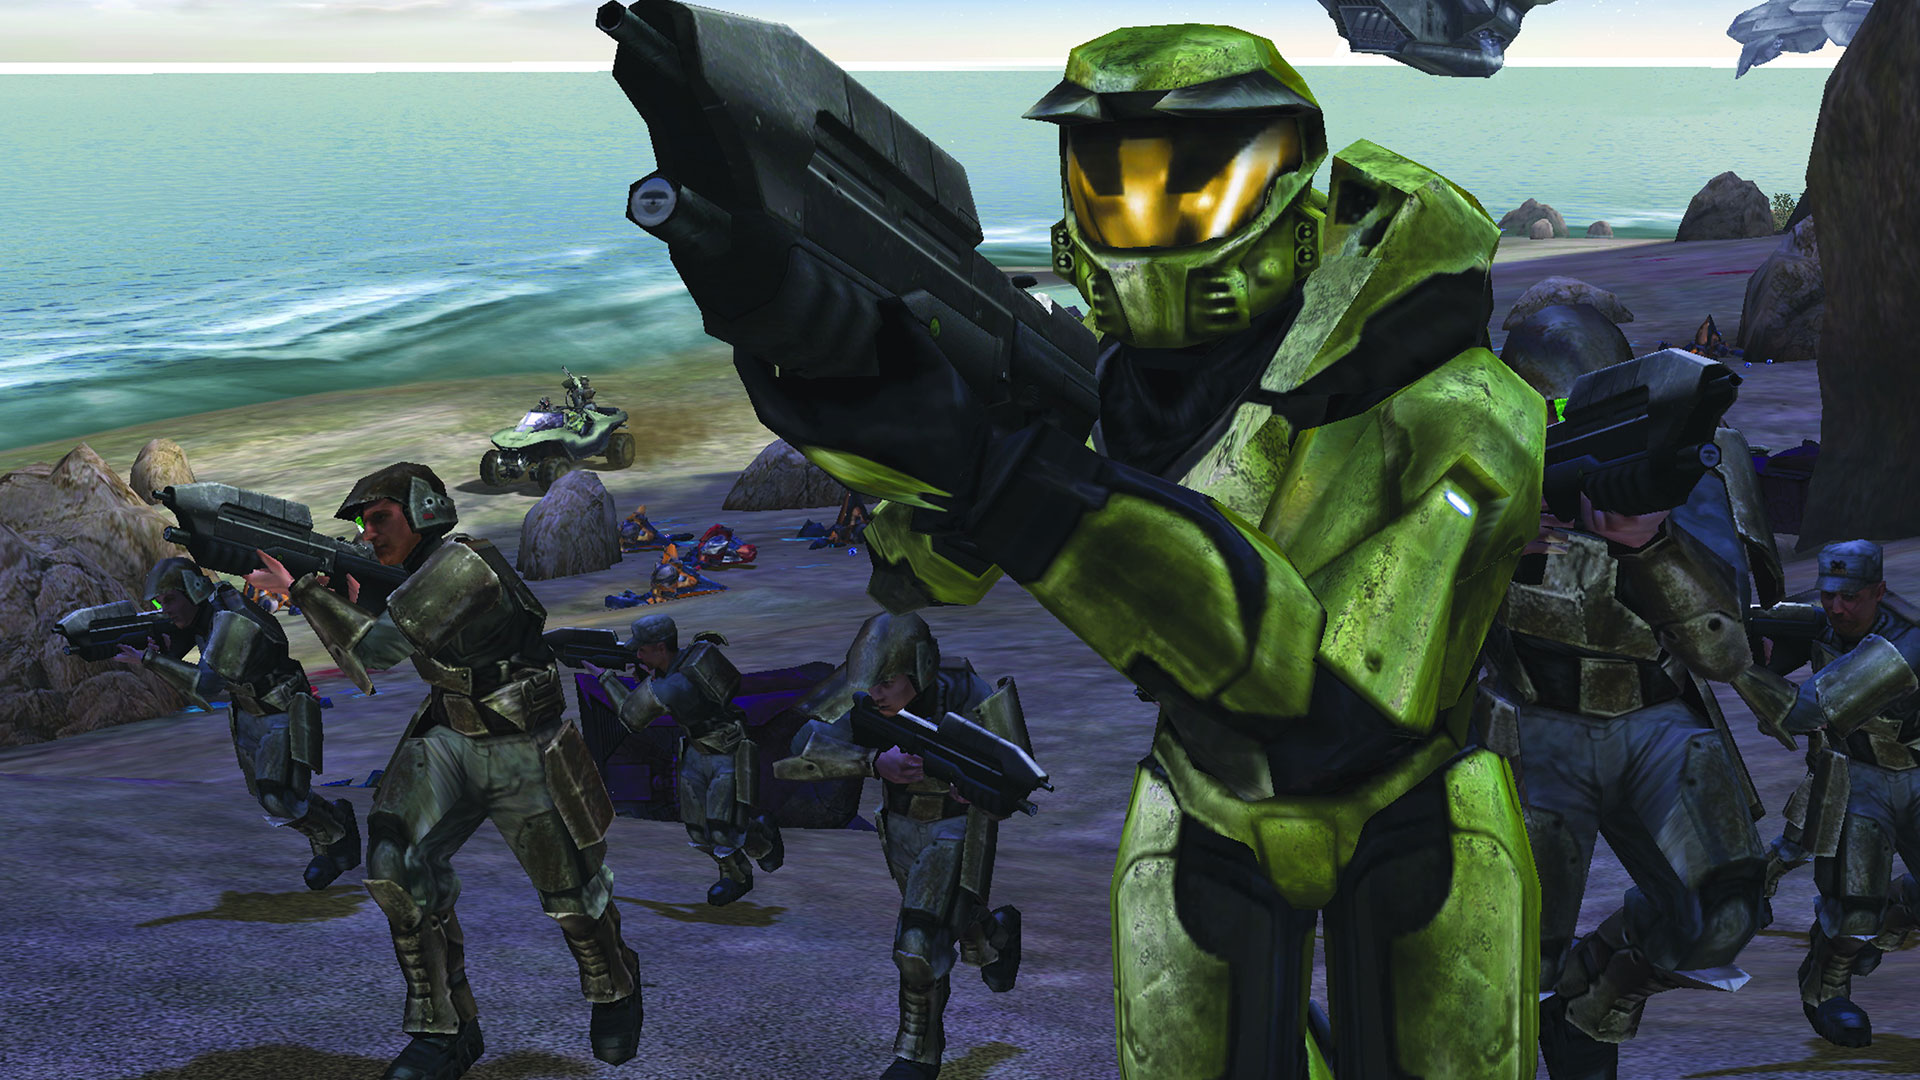 (Halo: Combat Evolved, Microsoft)